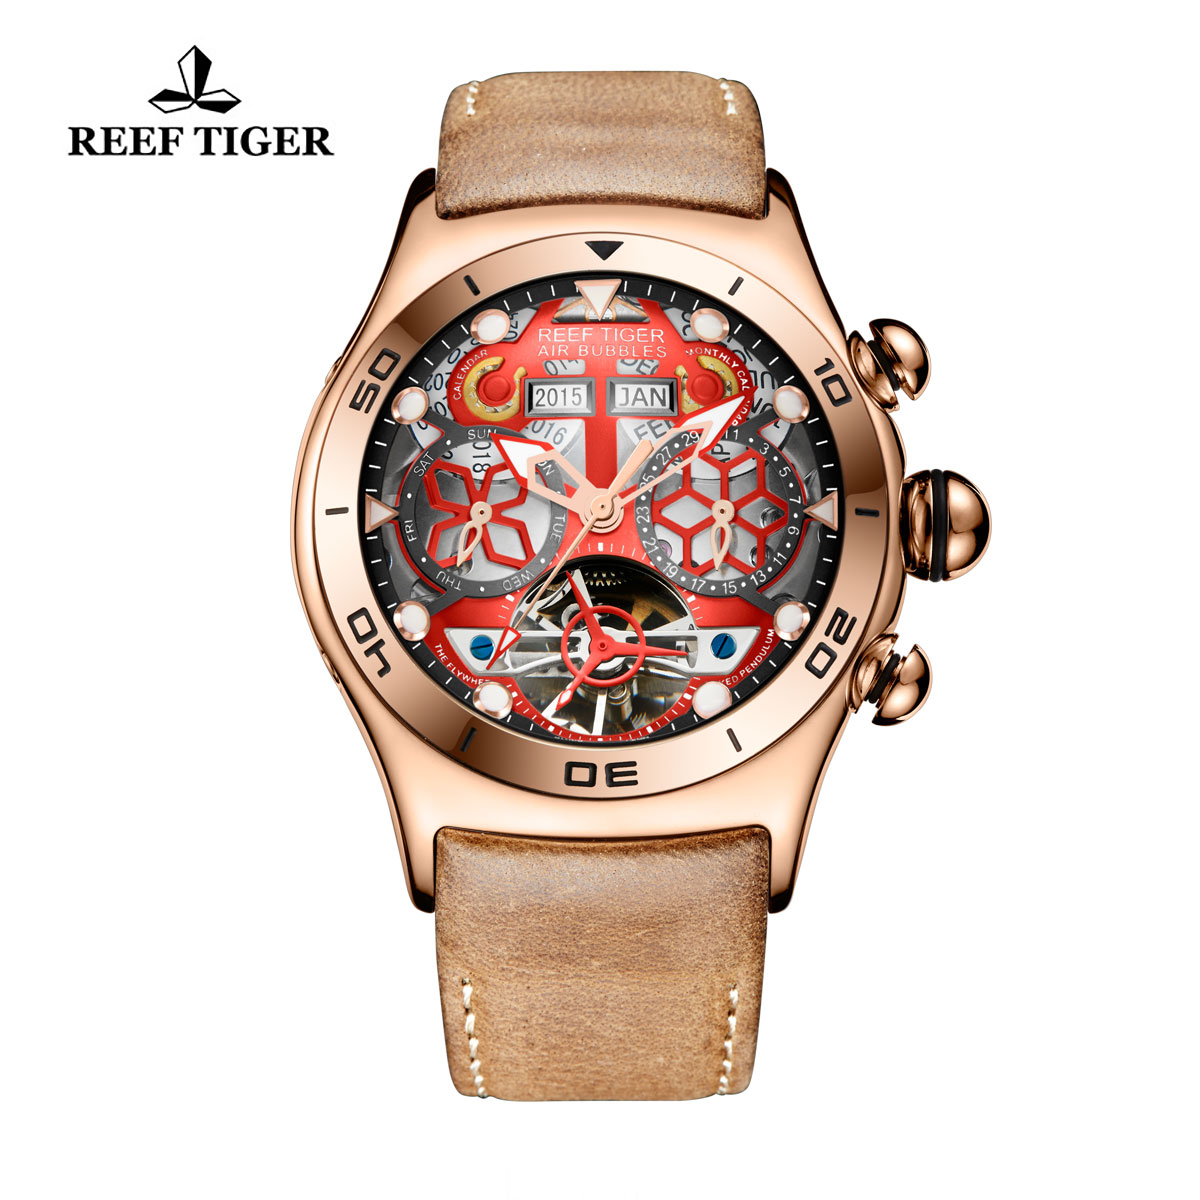 Reef Tiger Sport Casual Watches Automatic Watch Rose Gold Case Leather Strap RGA703-PRB